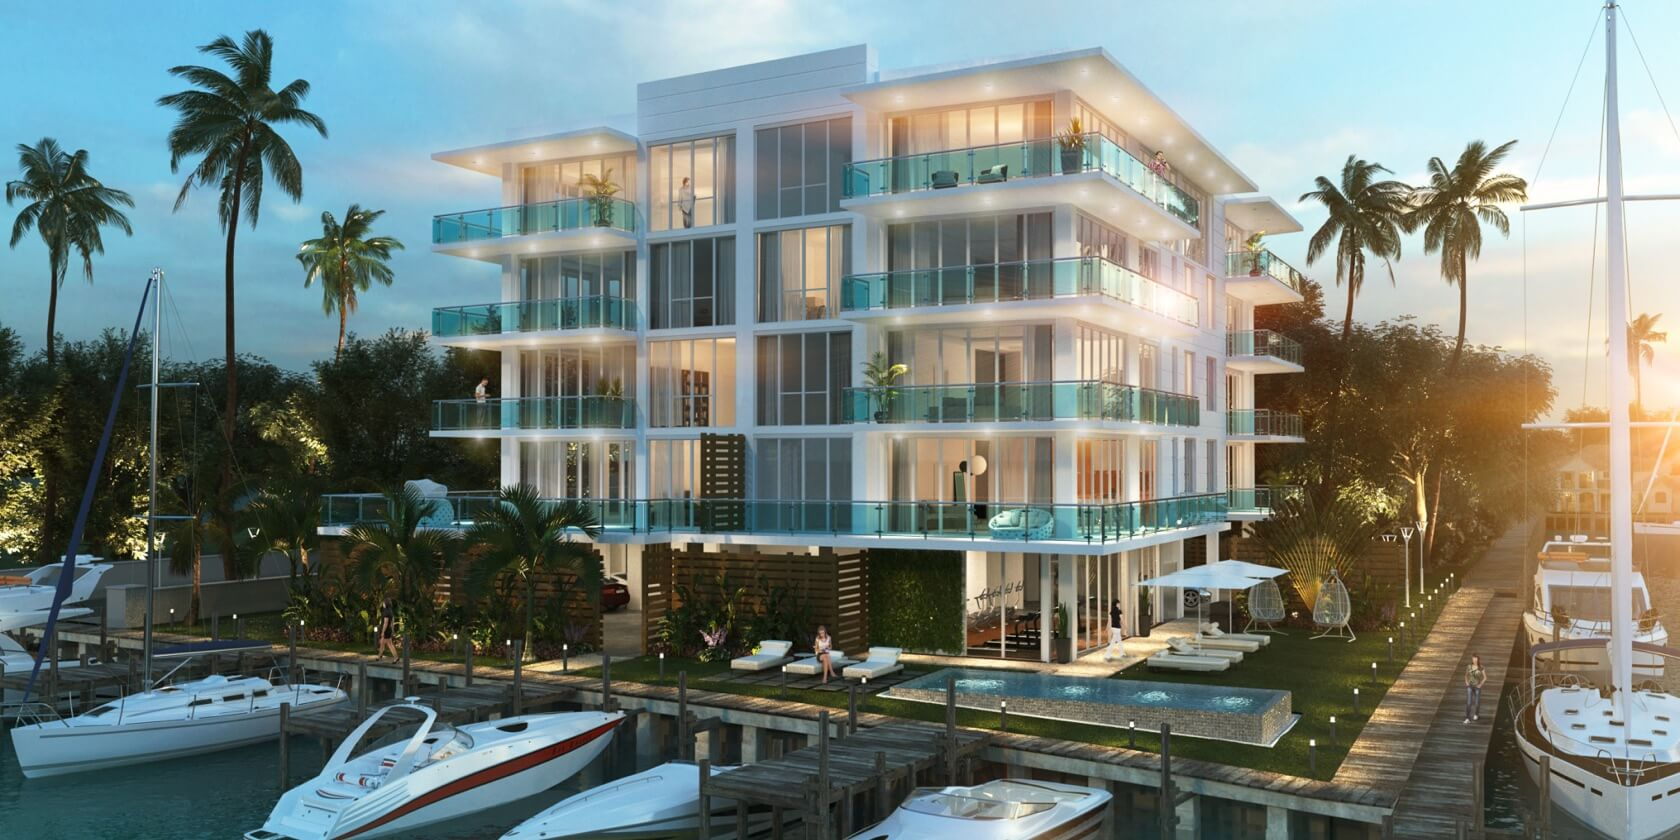 33 Intracoastal Condos Of Fort Lauderdale Fl 2895 Ne